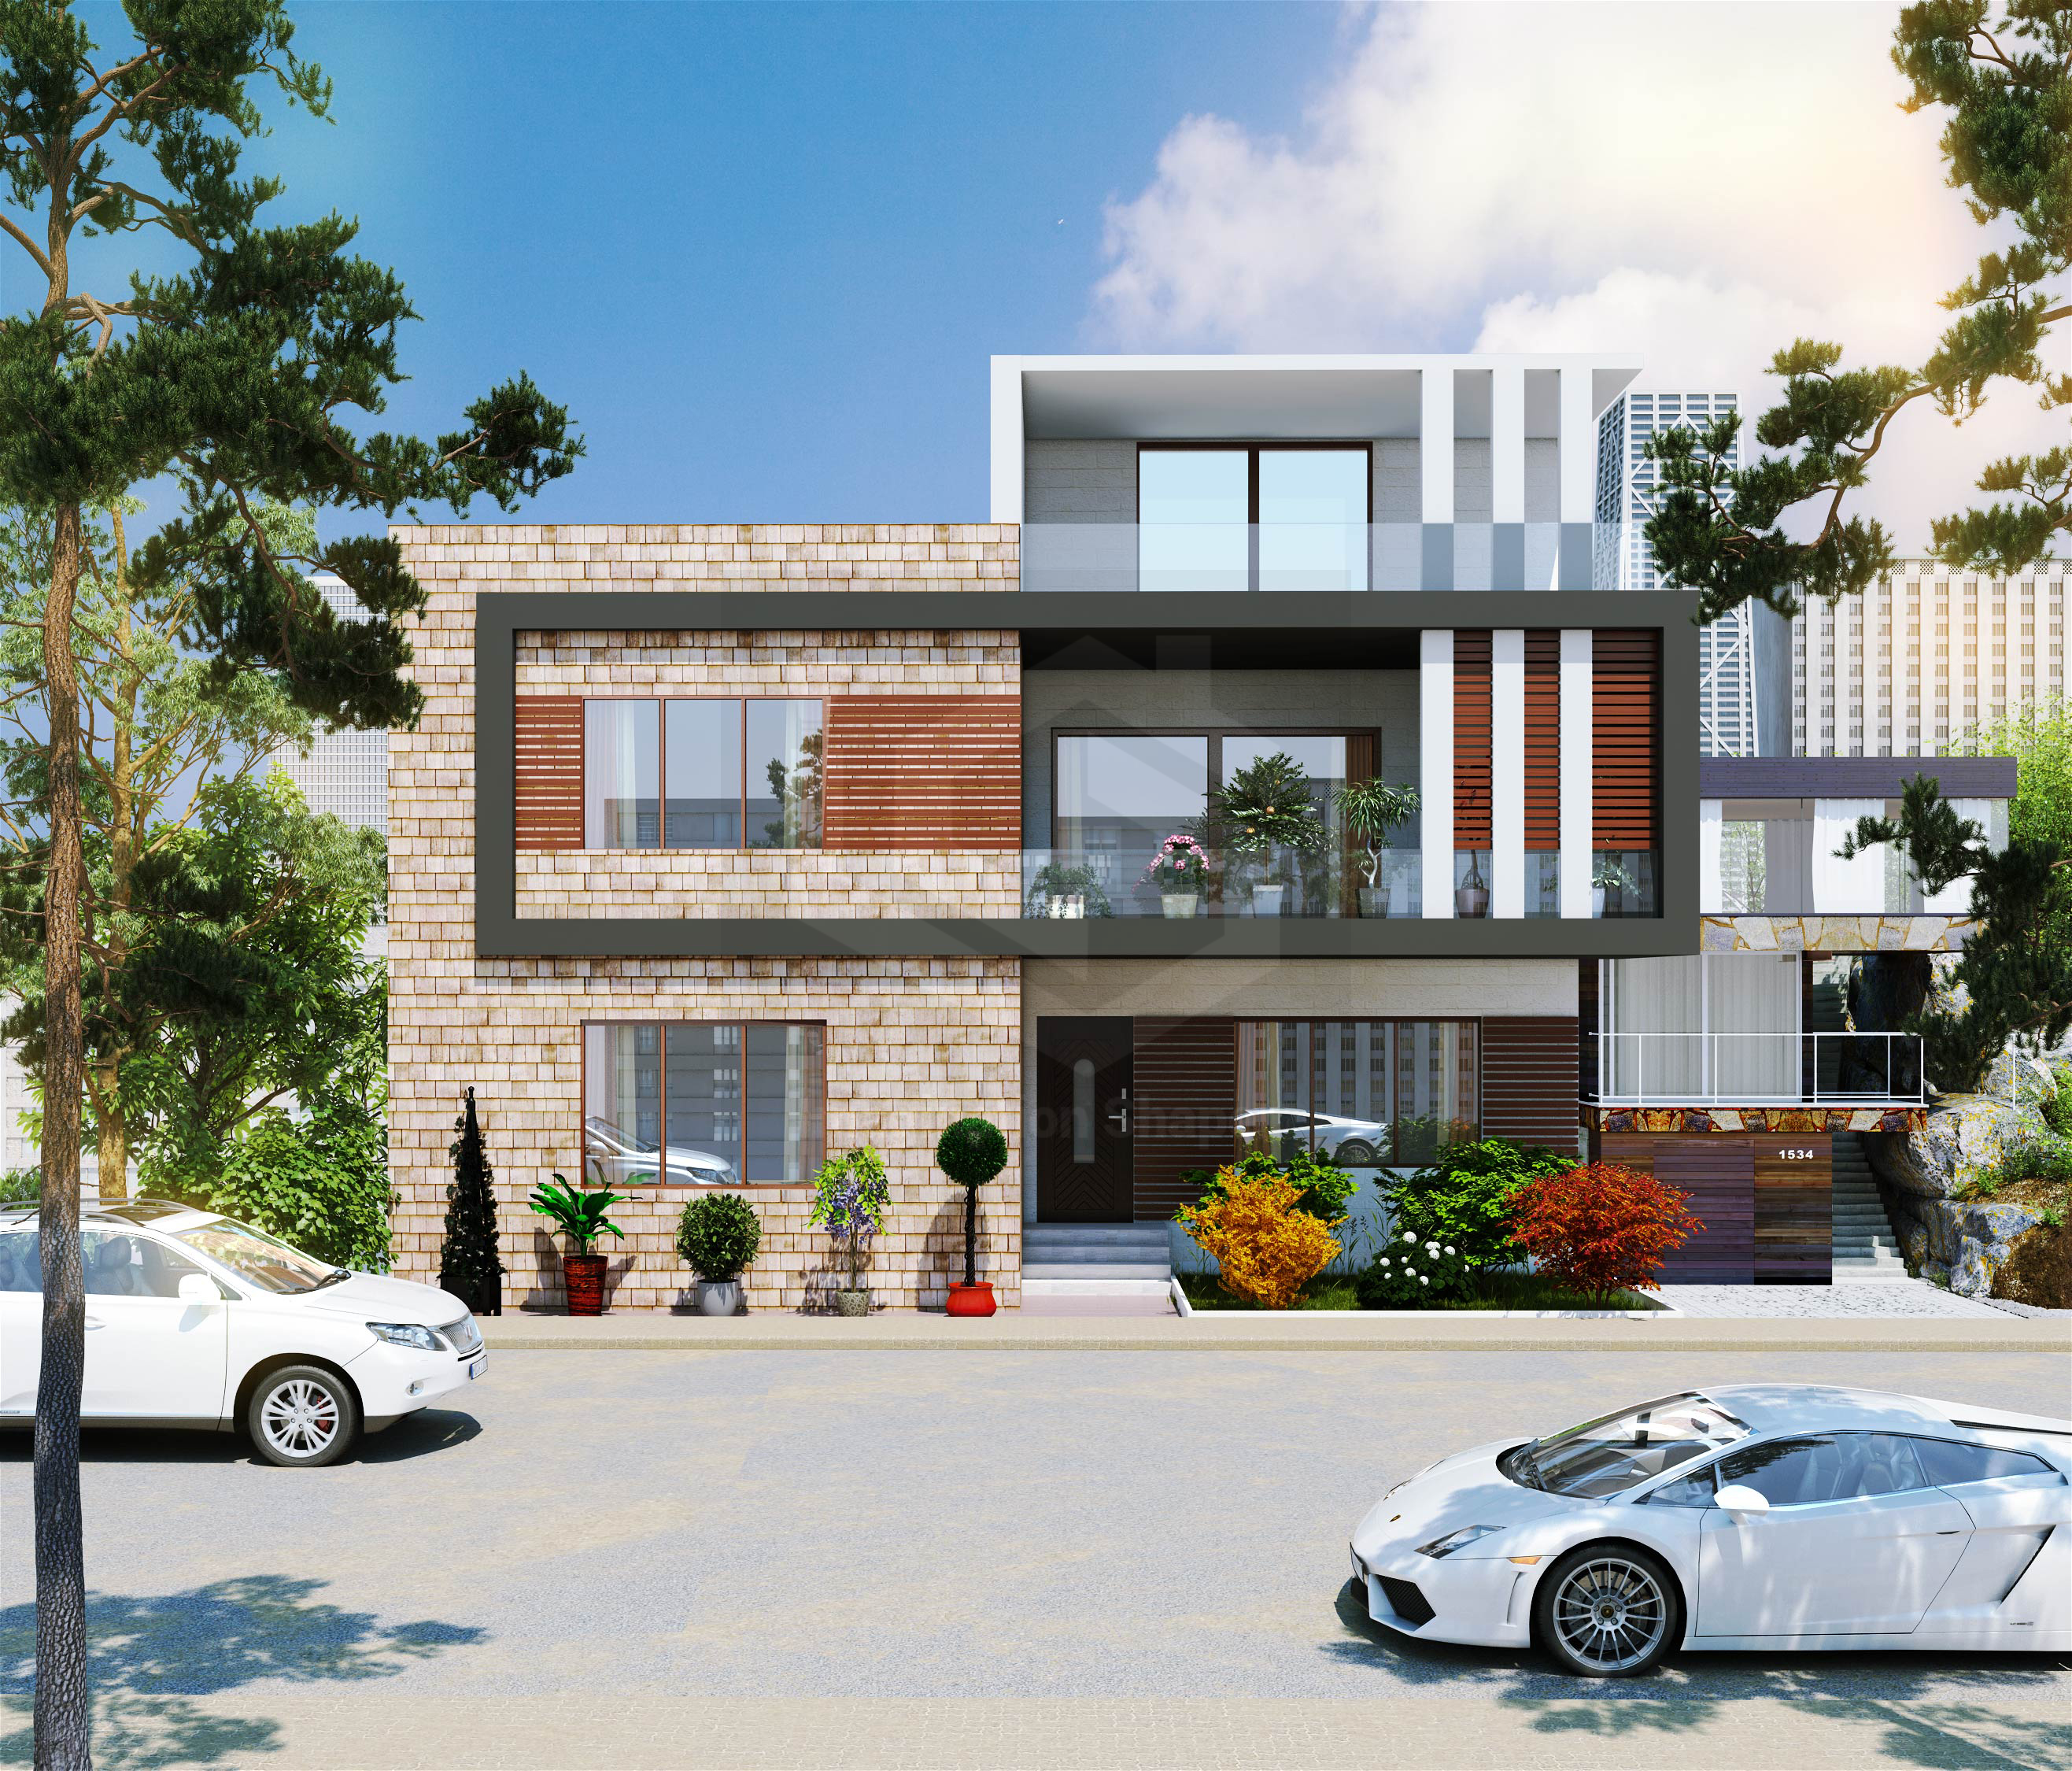 Home Design Ideas Front: Duplex Residential Front Elevation